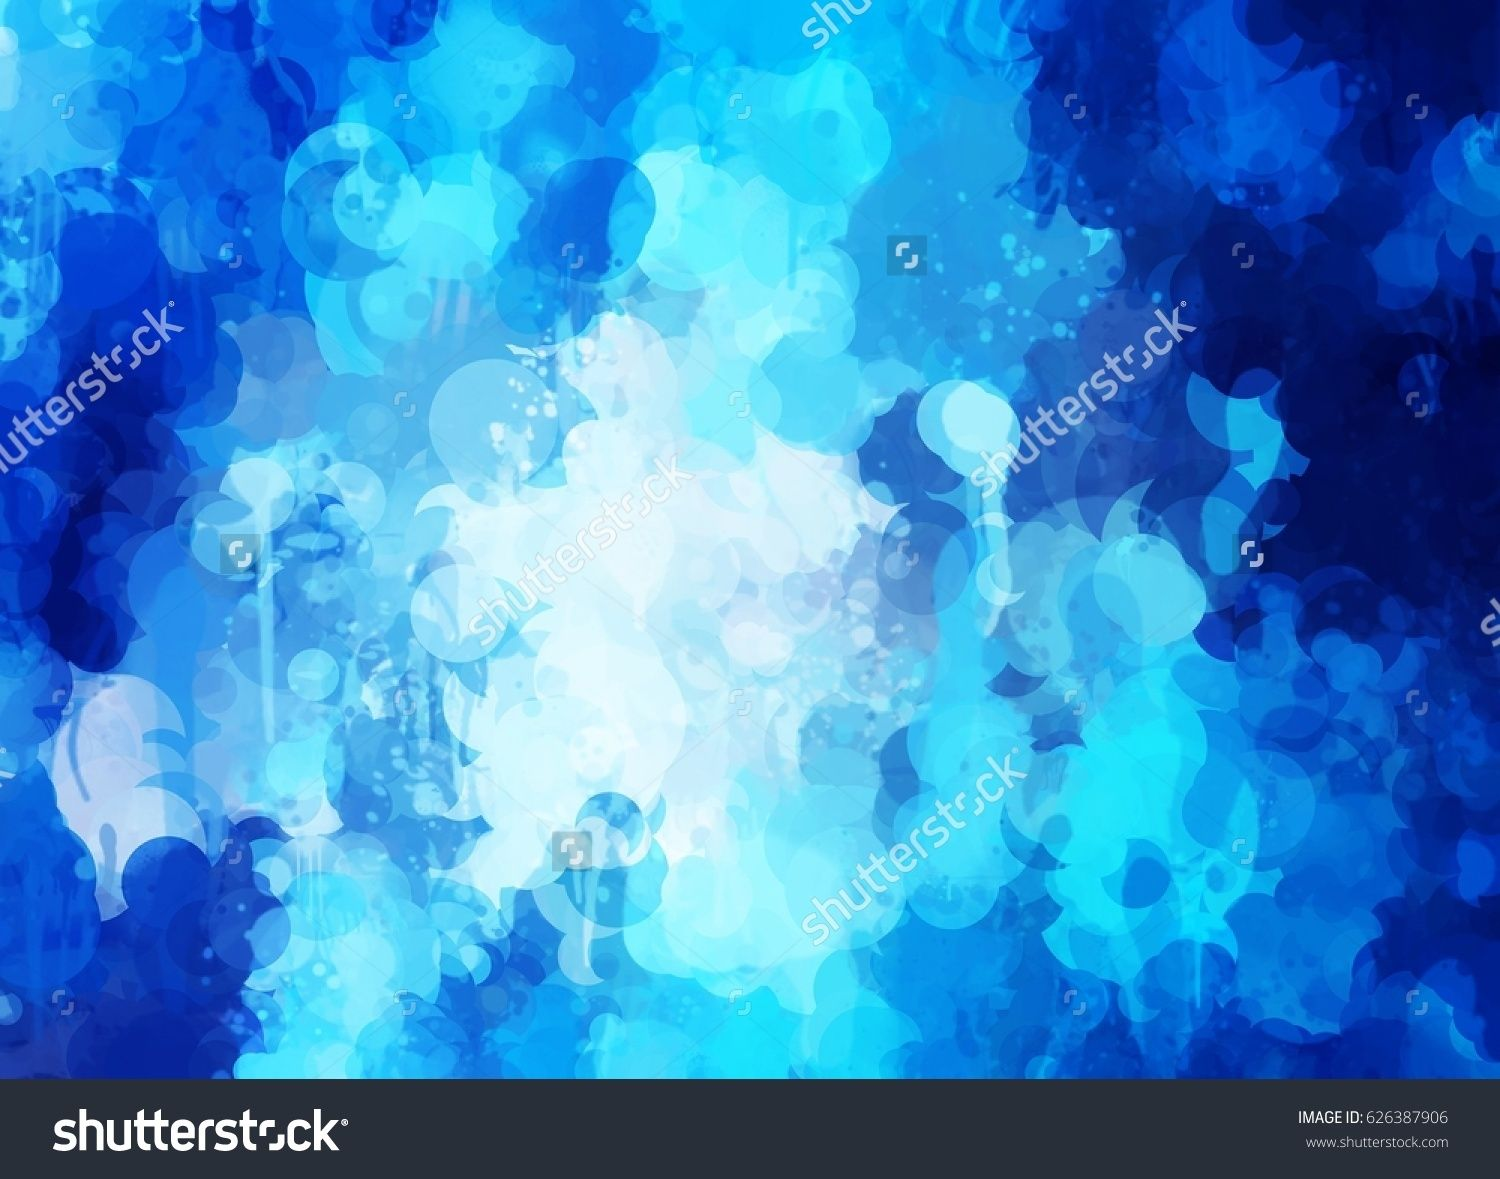 brush strokes texture like illustration abstract background